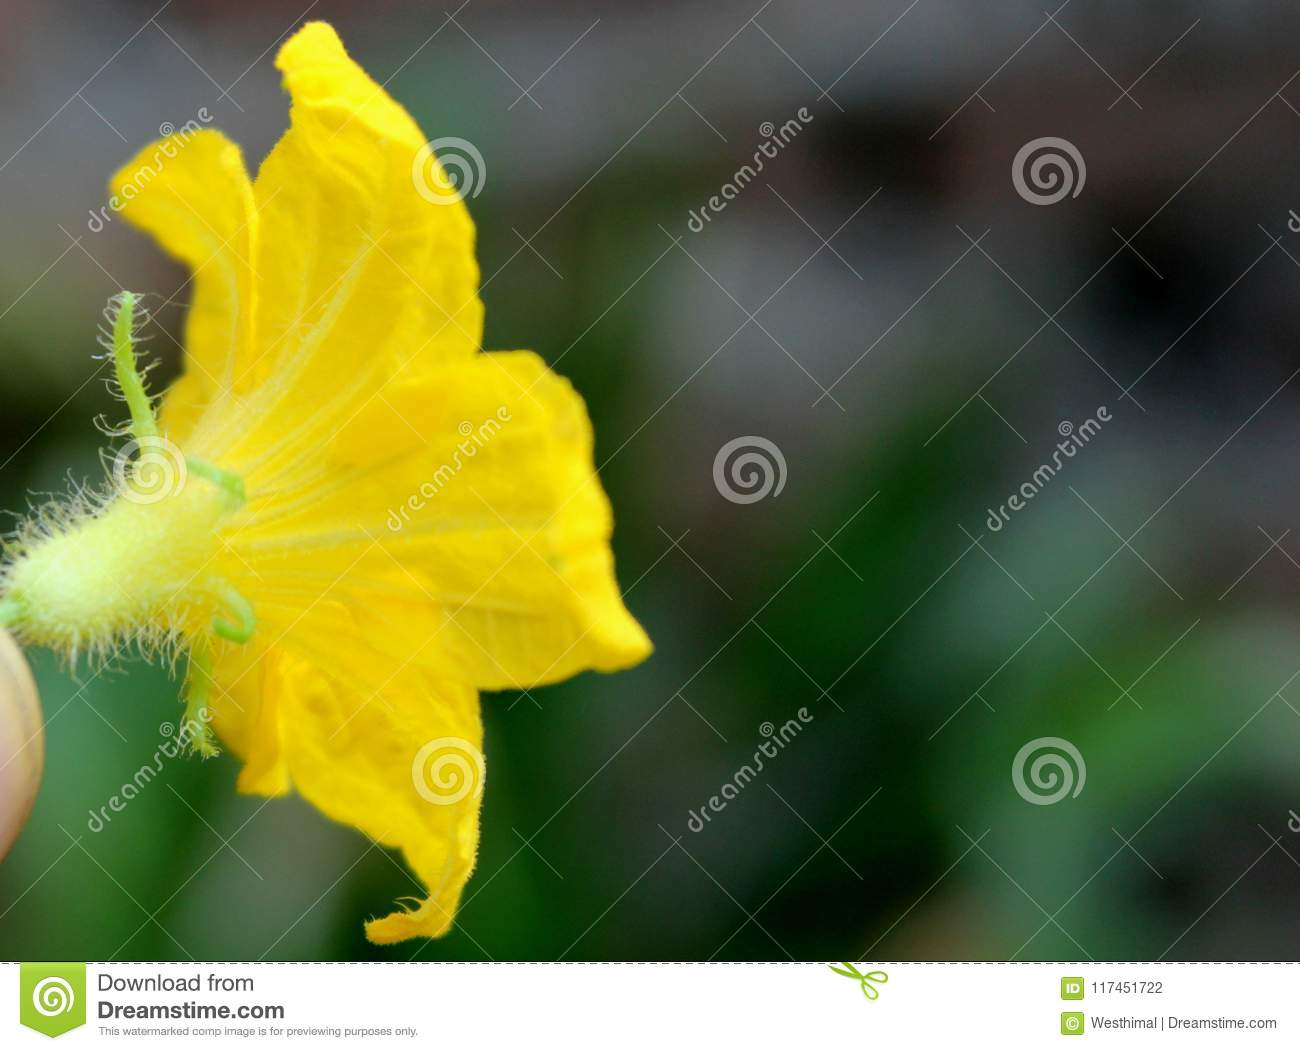 Flower of cucumber cucumis sativus stock photo image of yellow flower of cucumber cucumis sativus cultivated vine with angled leaves small yellow flowers and elogated green fruits covered with tubercles when young mightylinksfo